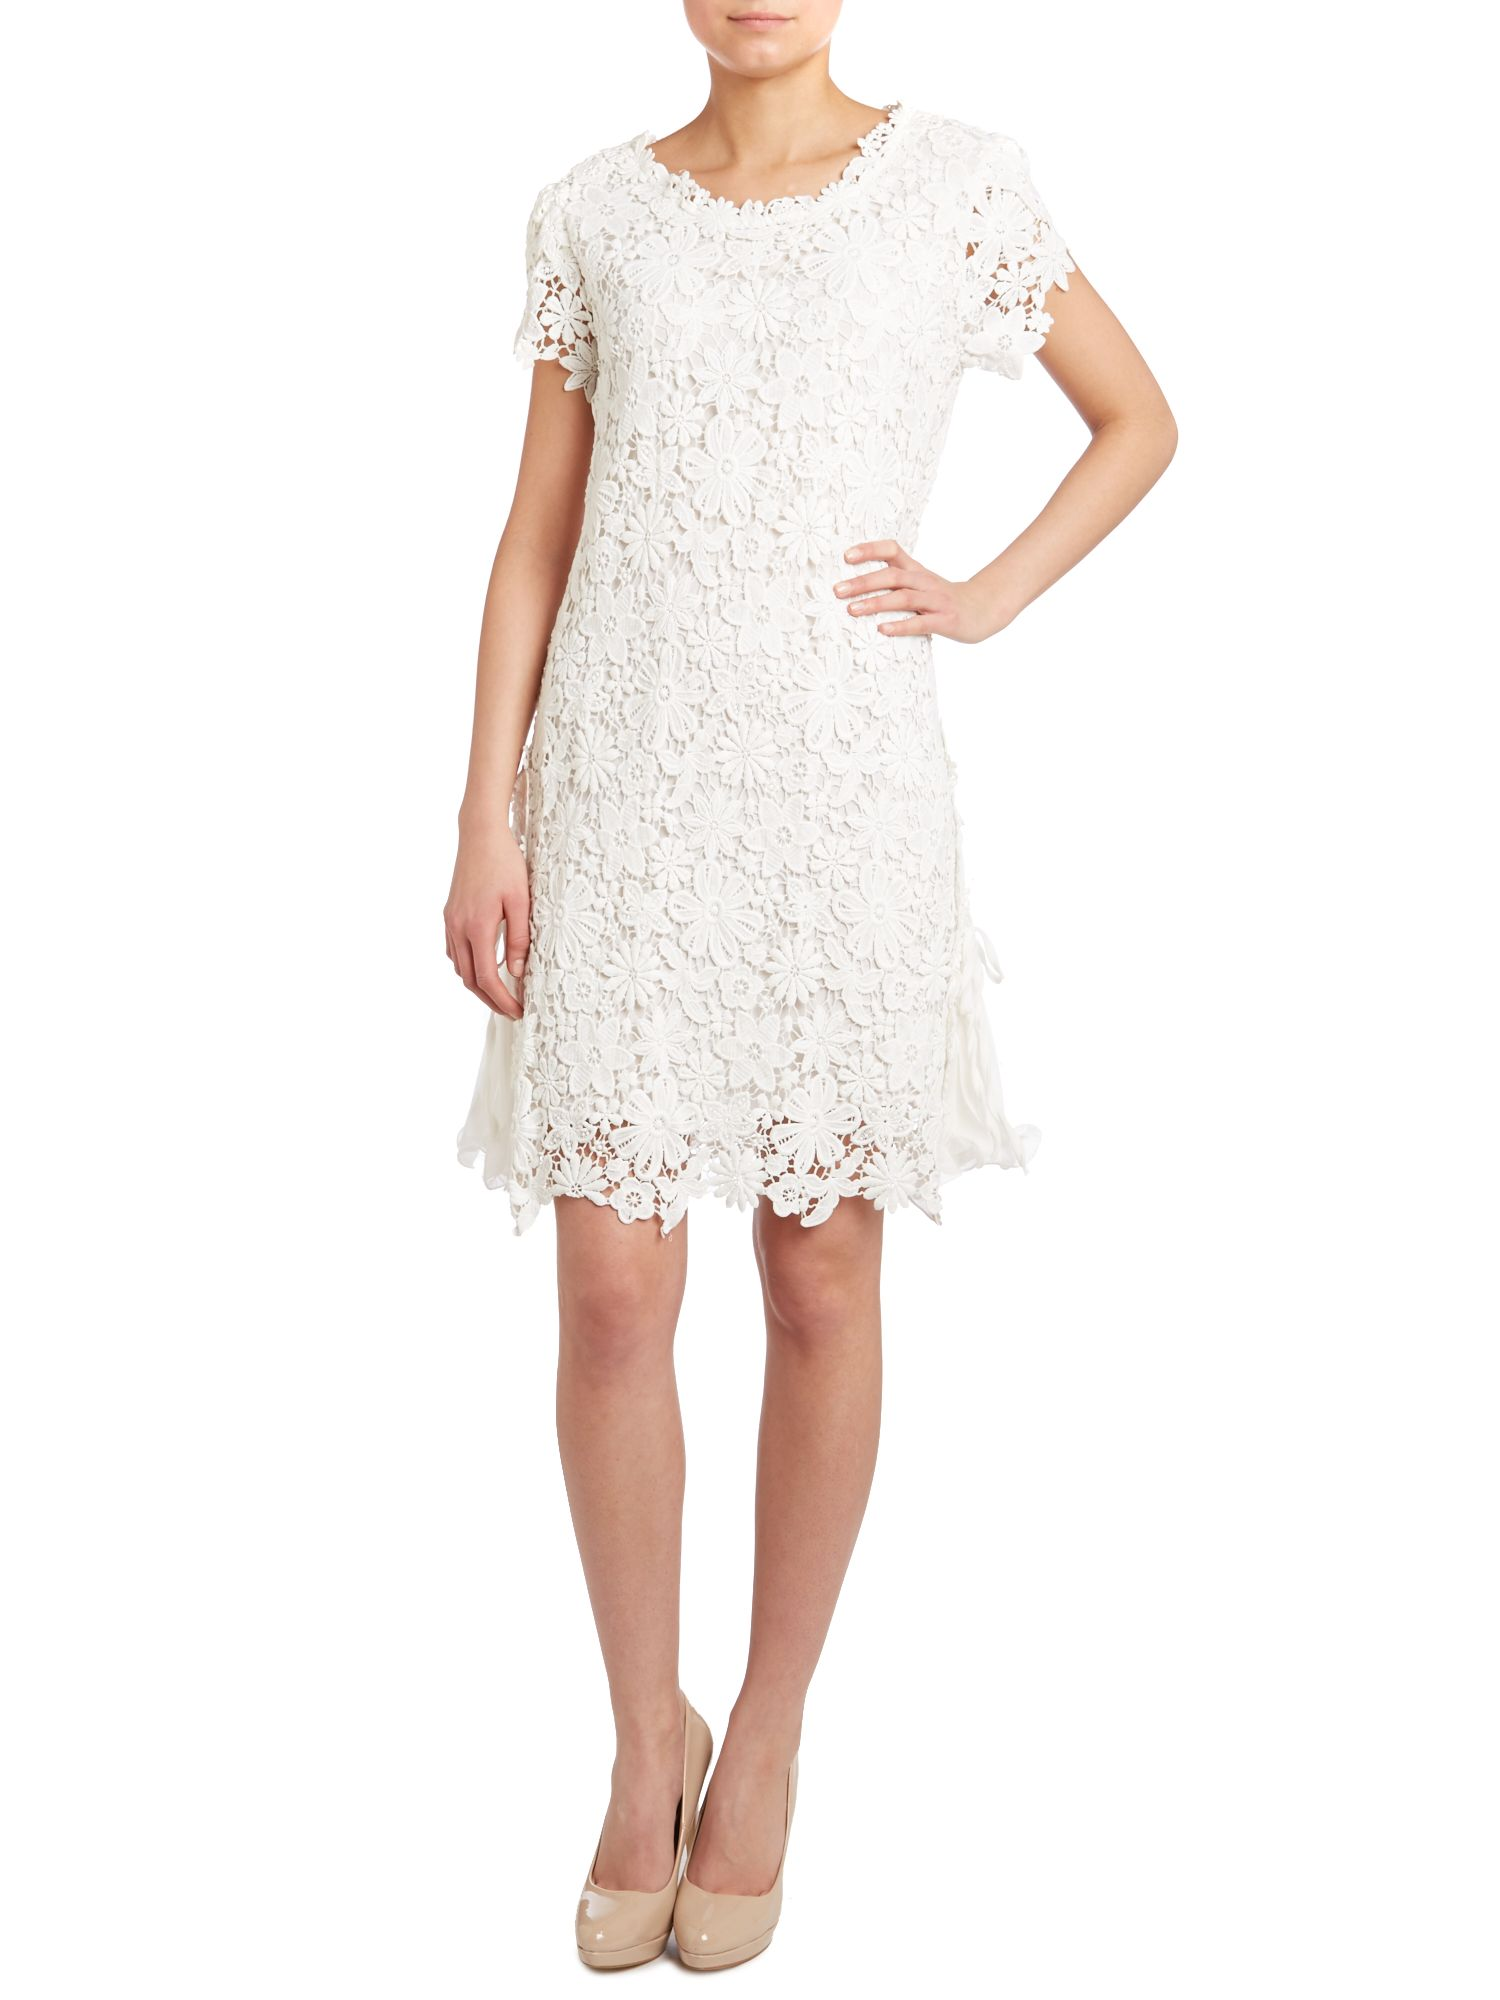 Crochet lace swing dress